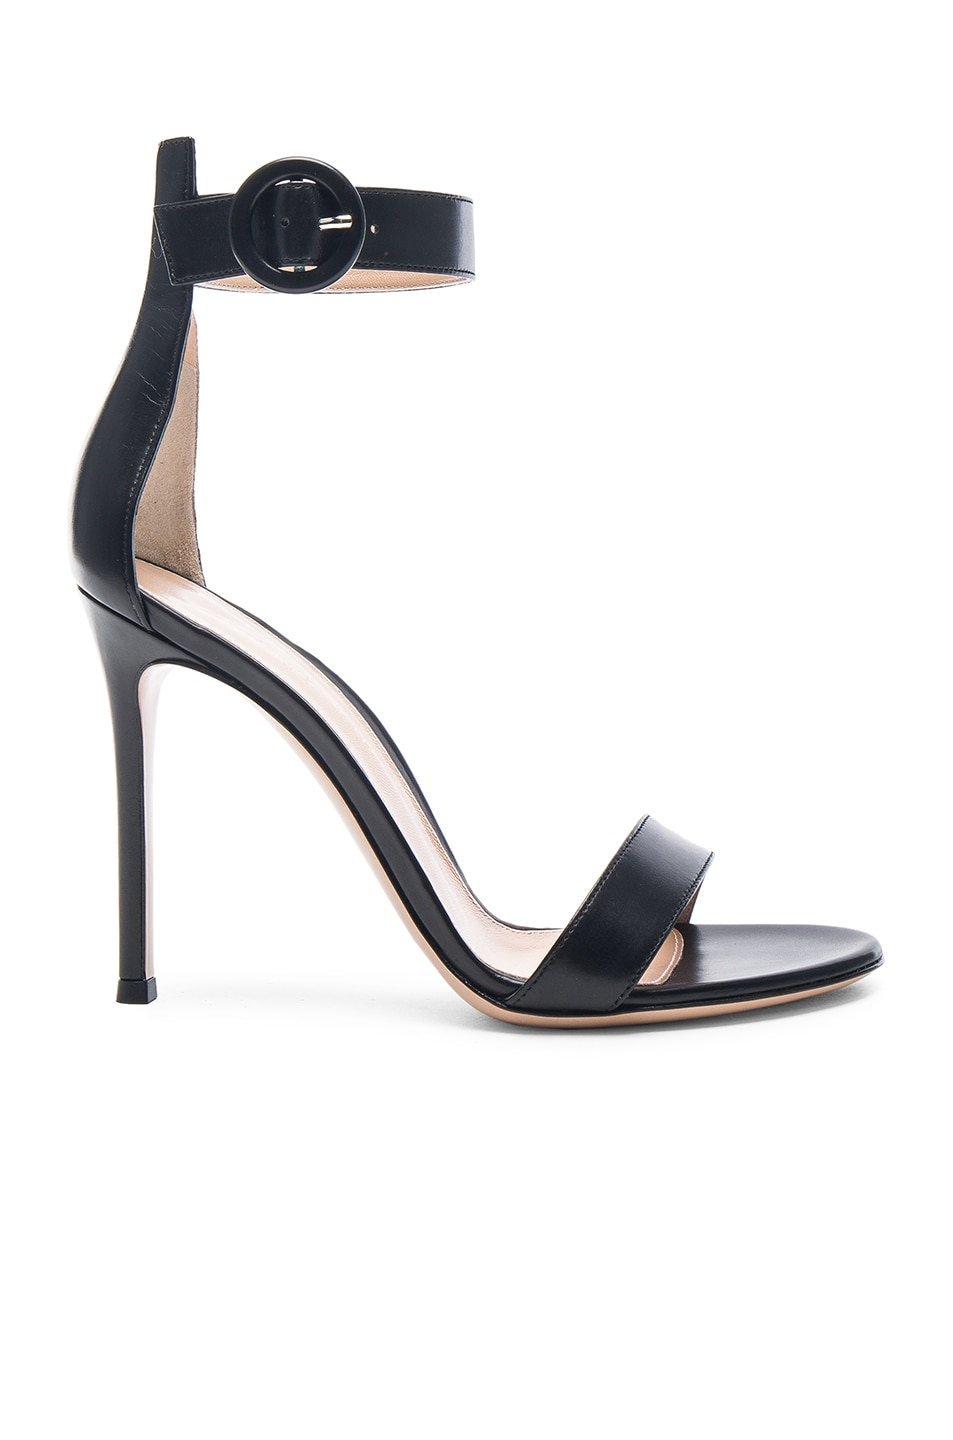 Image 1 of Gianvito Rossi Leather Portofino Heels in Black